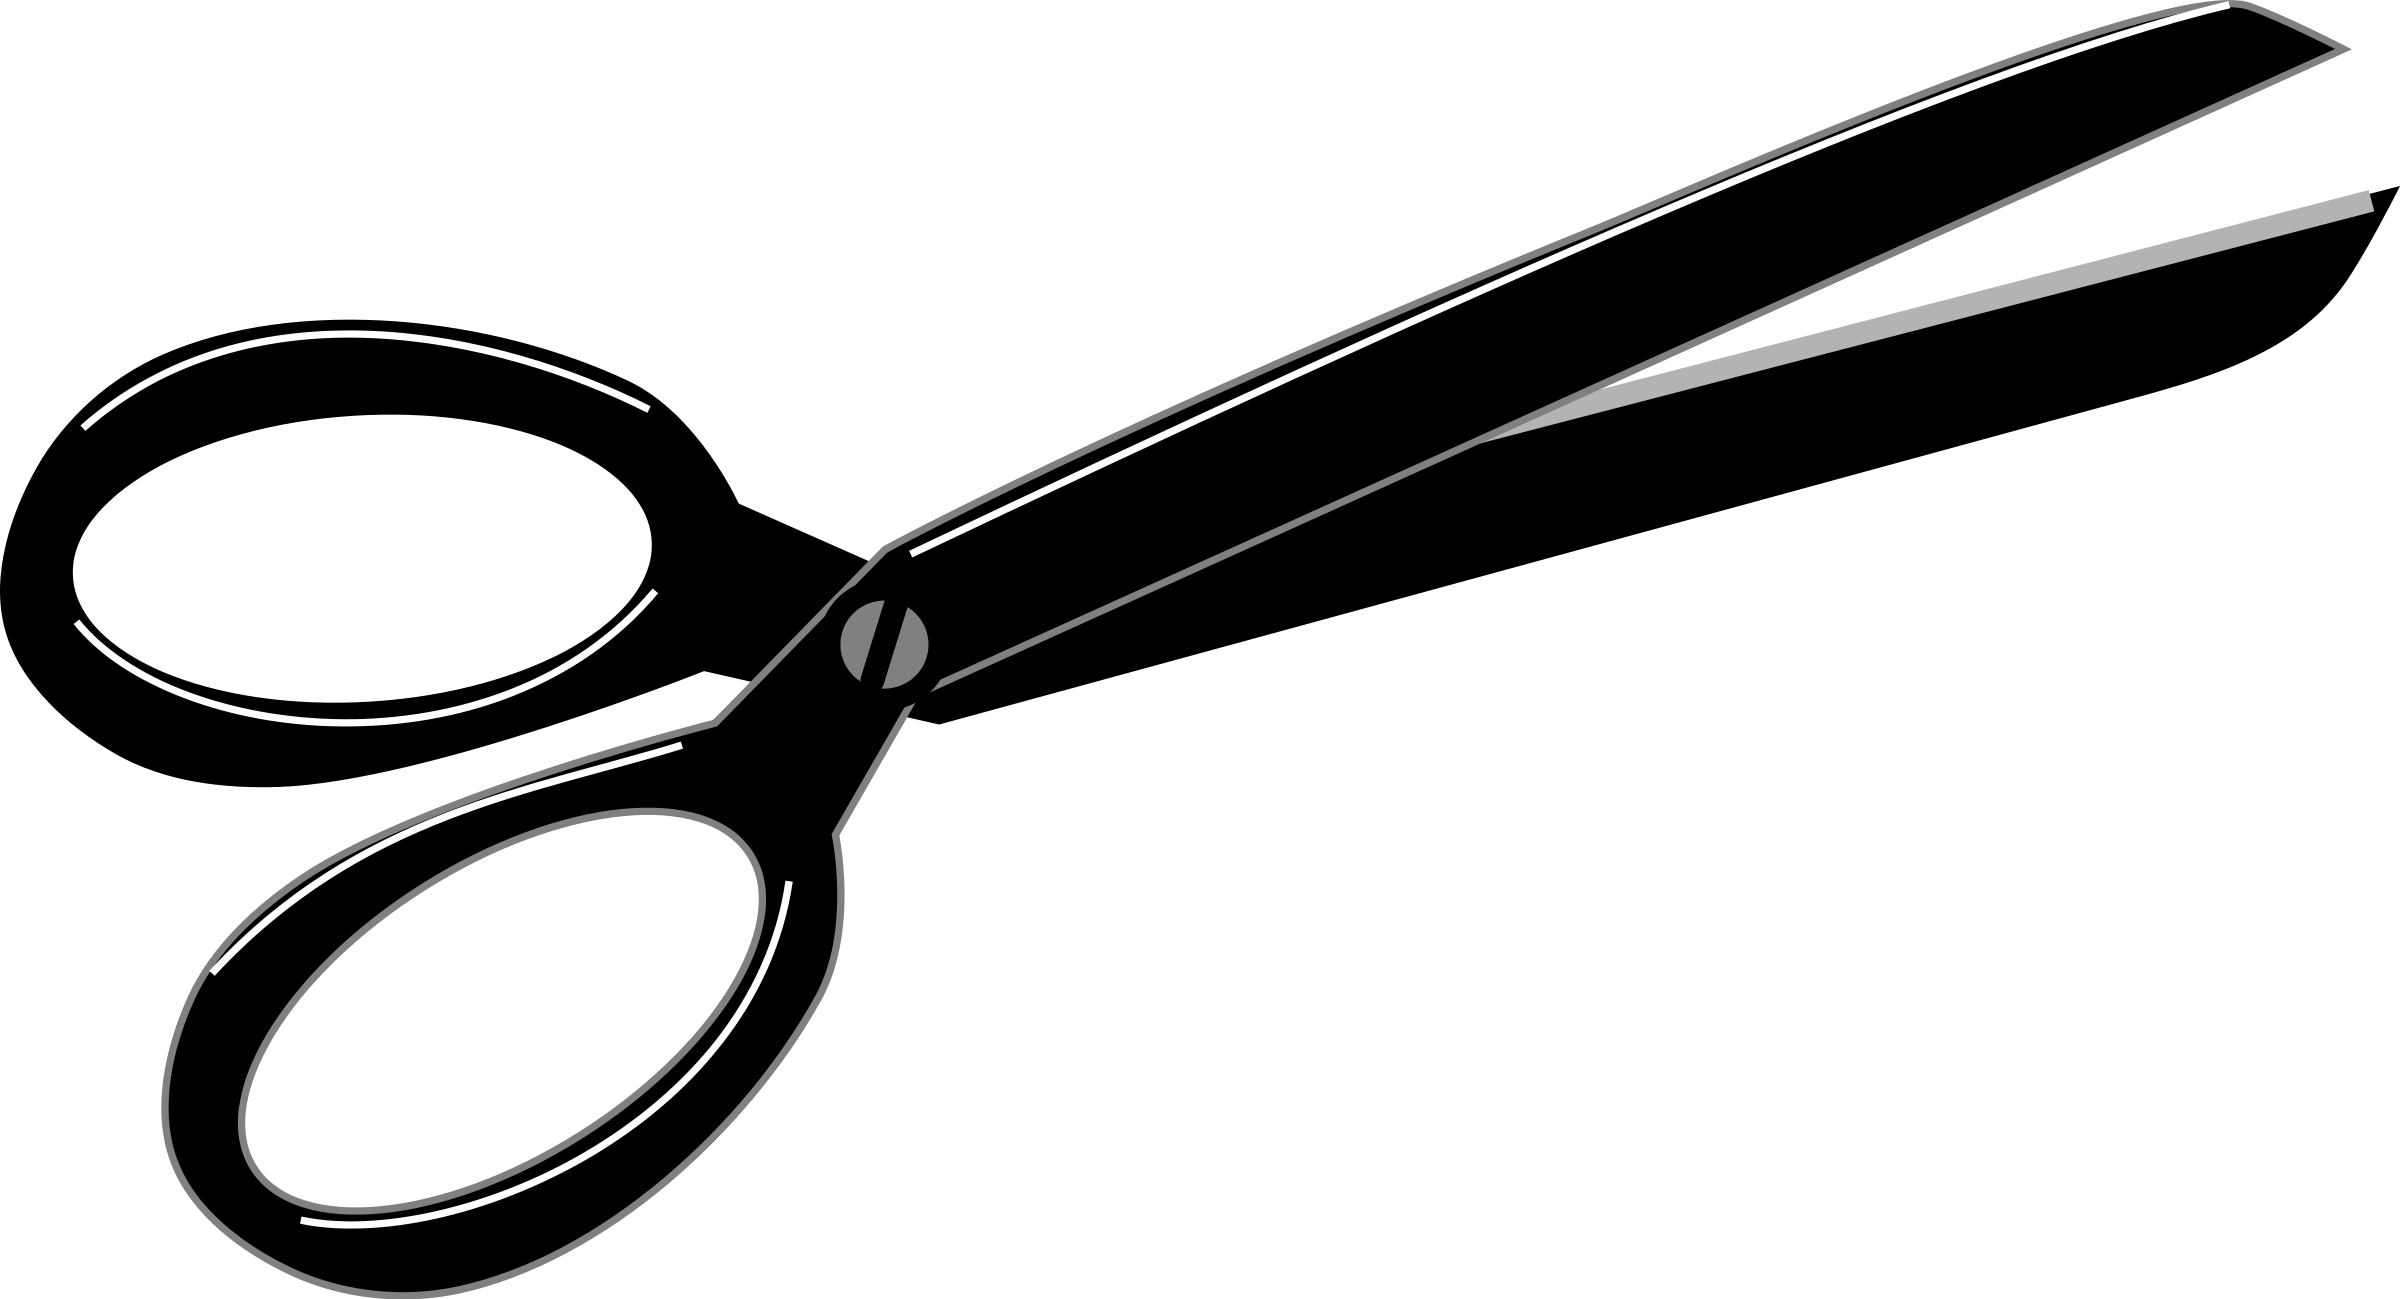 Scissor png images transparent. Shears clipart sewing accessory